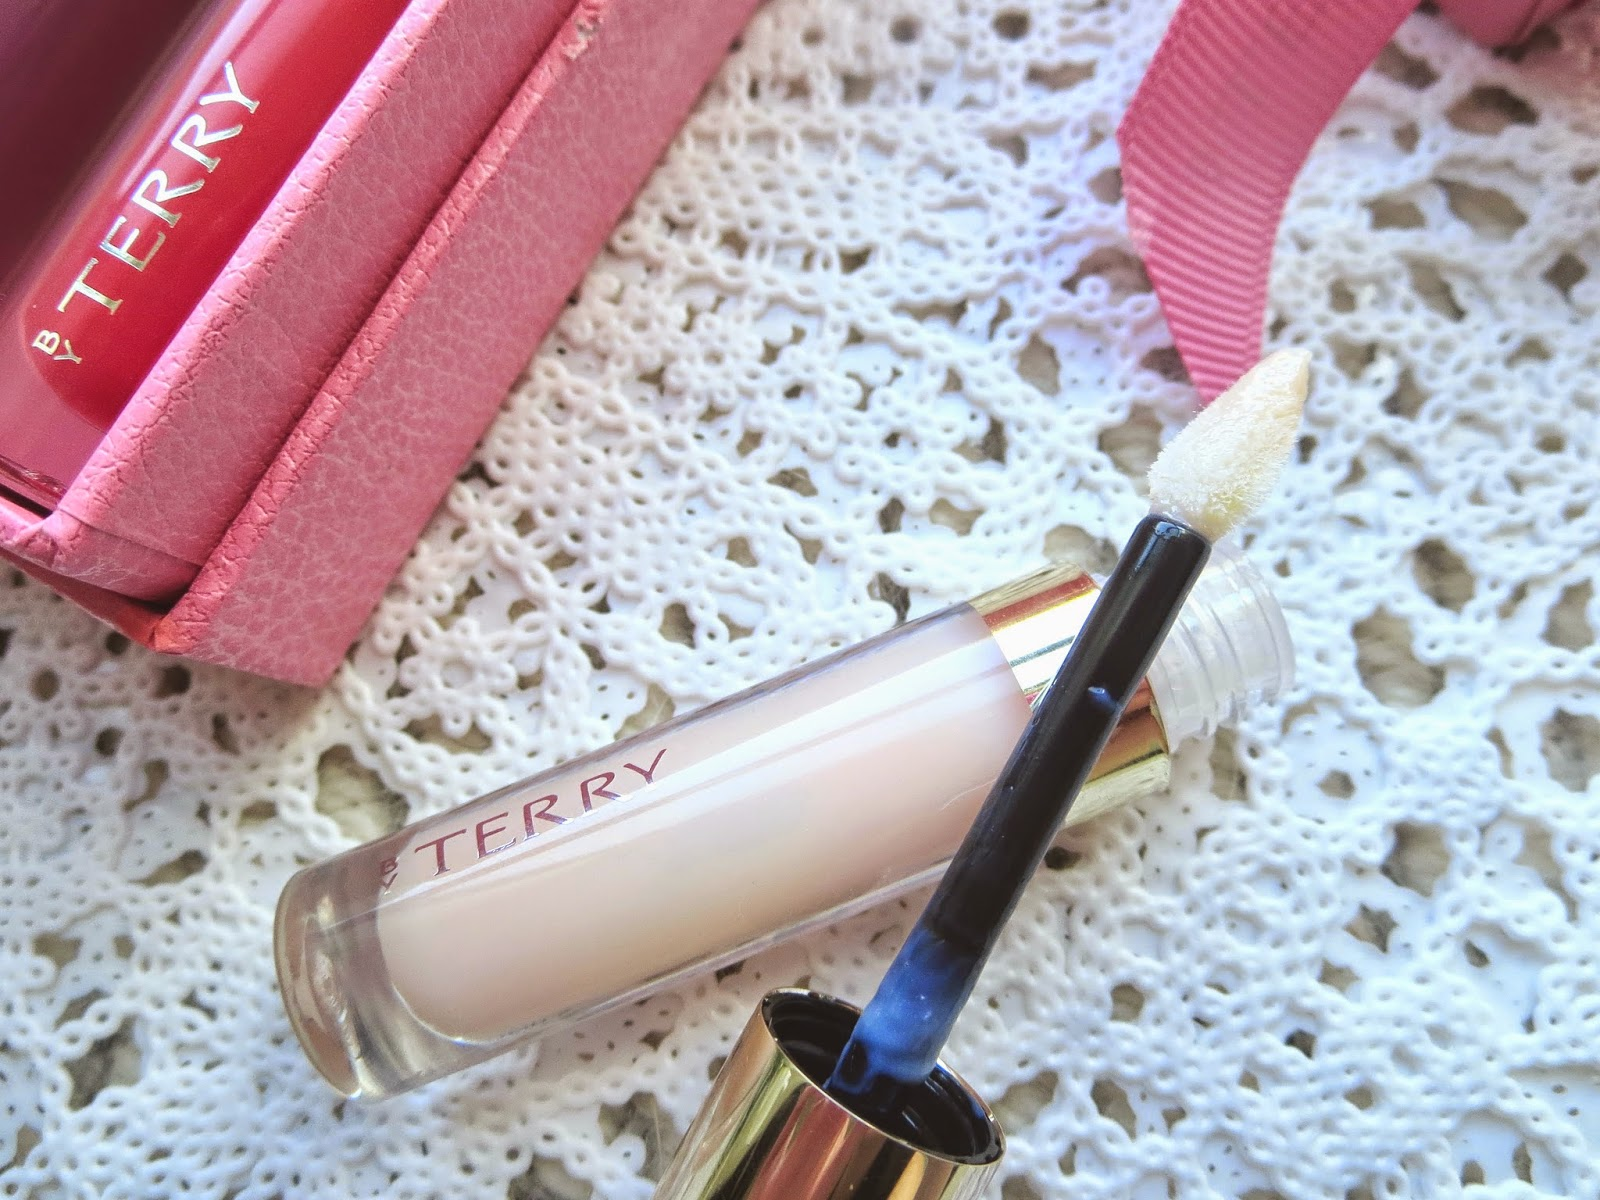 a picture of By Terry Baume De Rose brush applicator